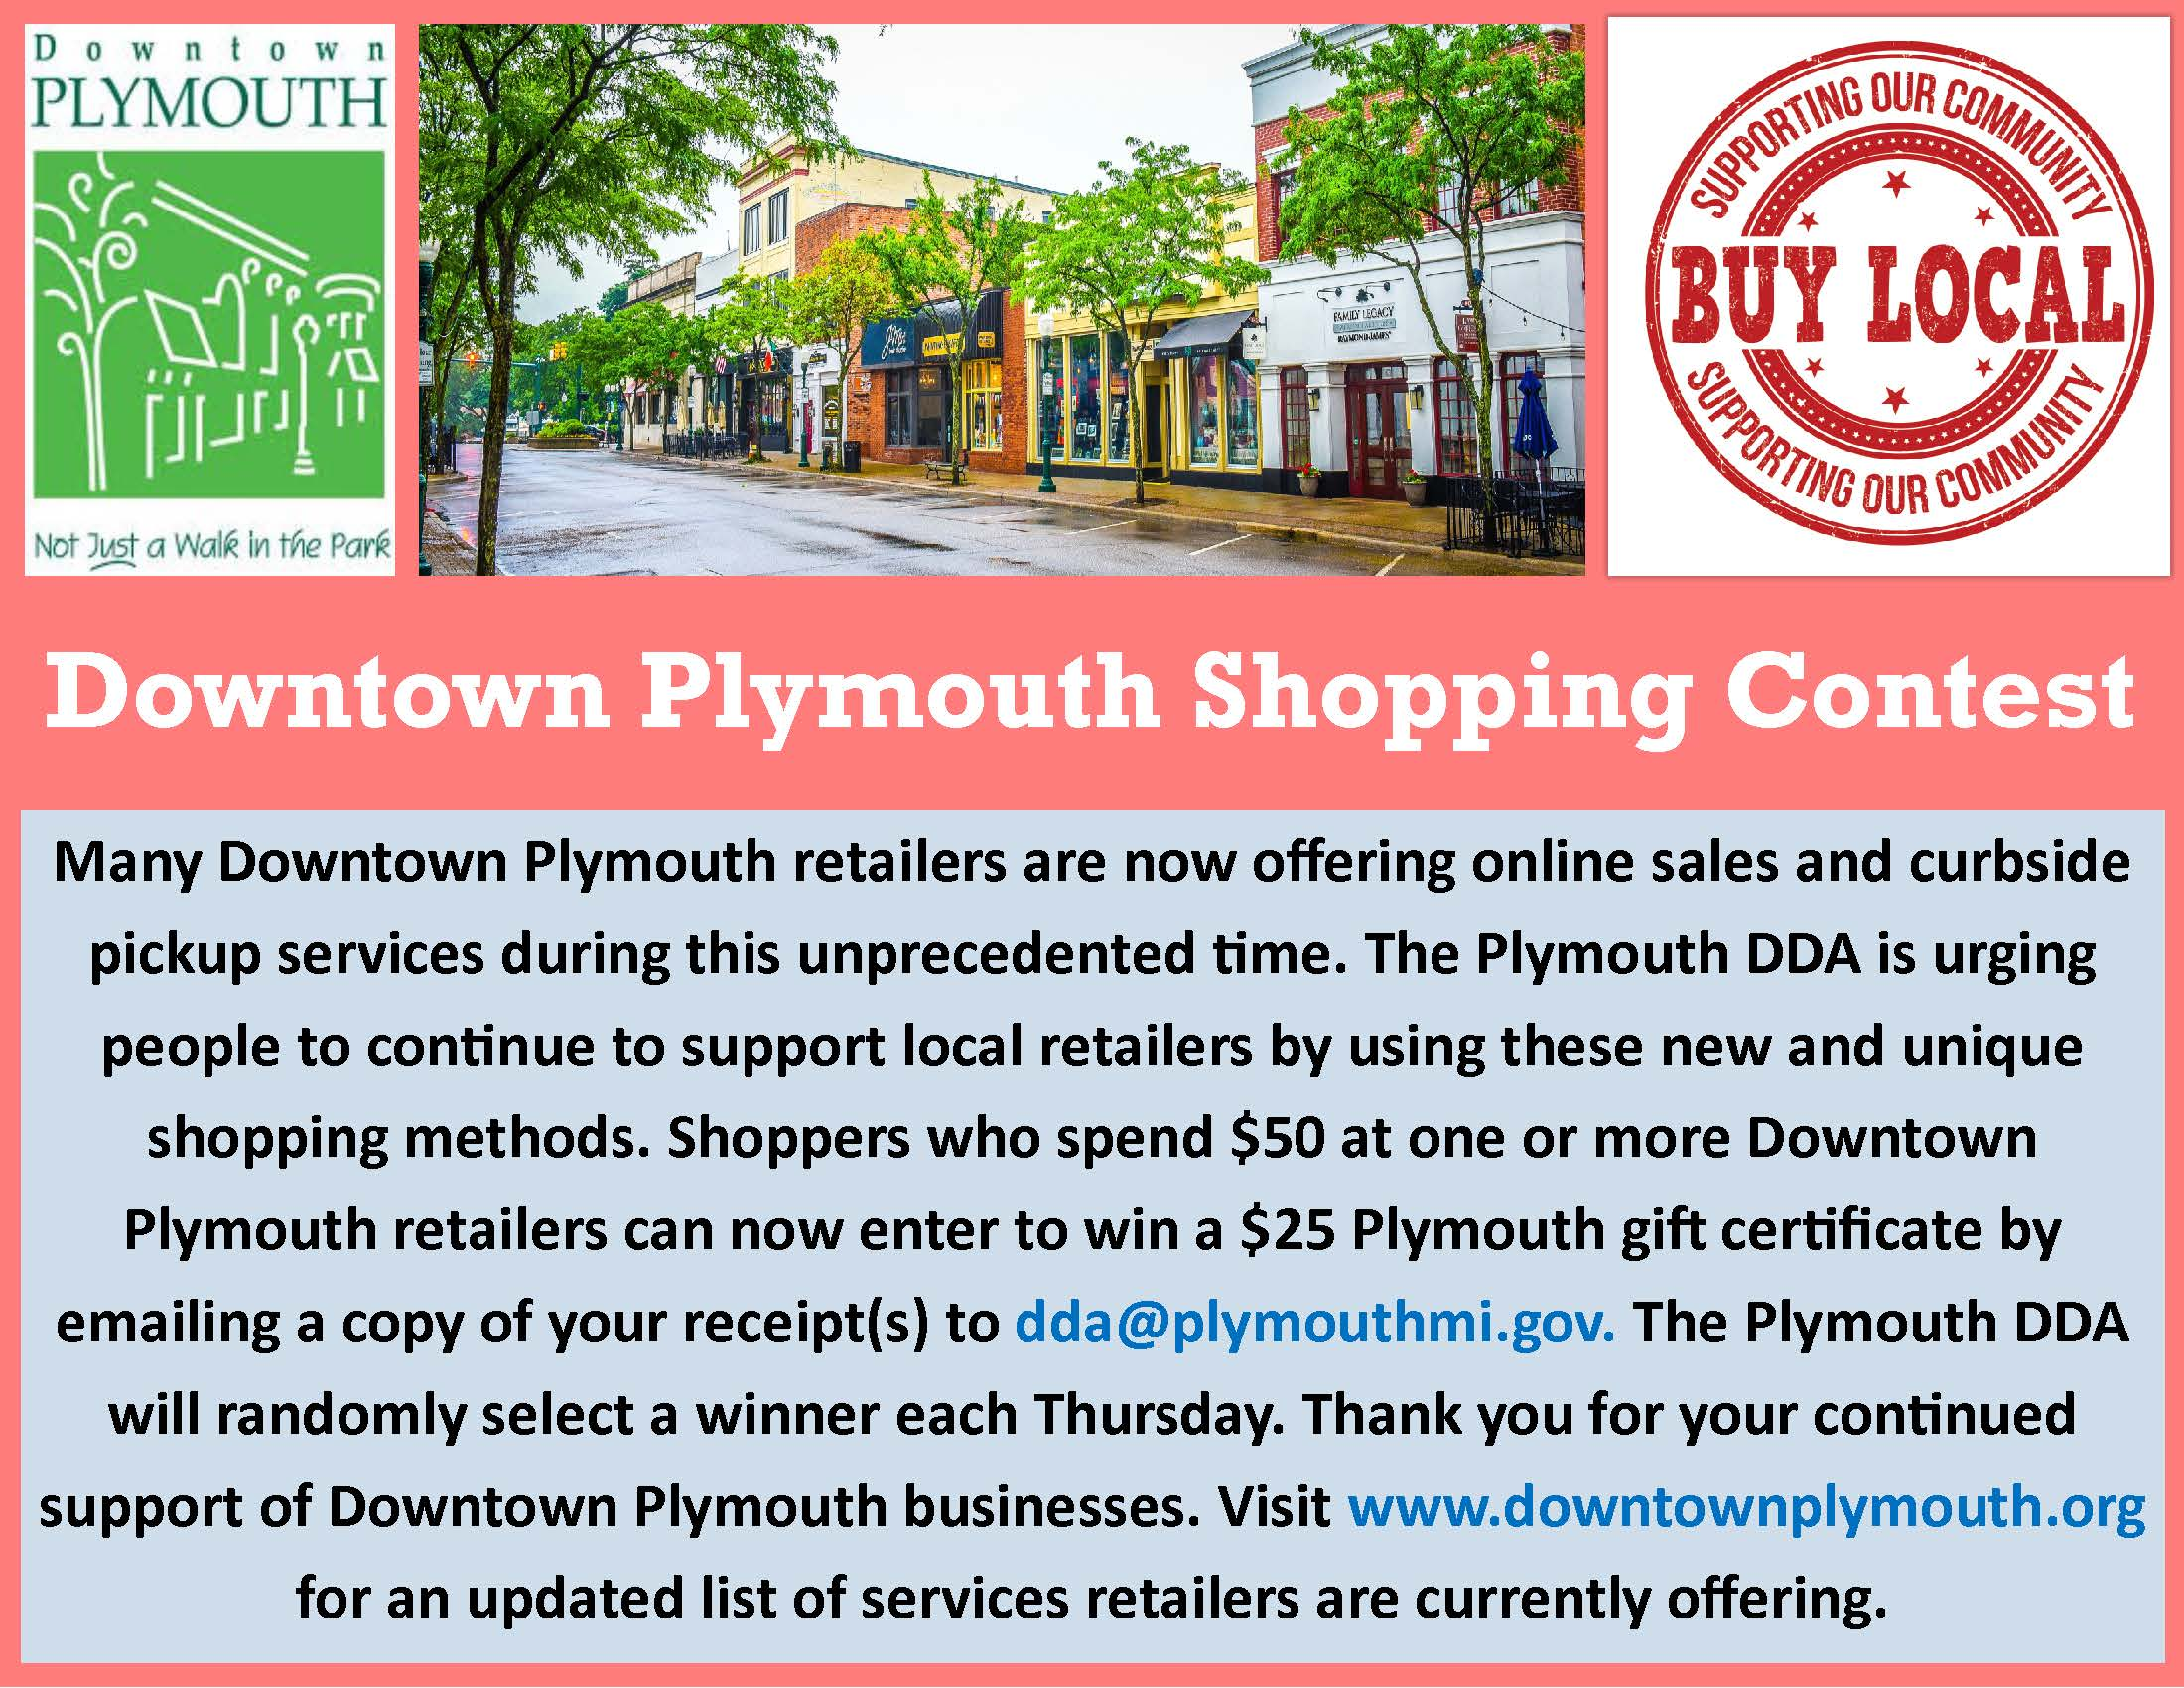 Downtown Plymouth Retail Contest